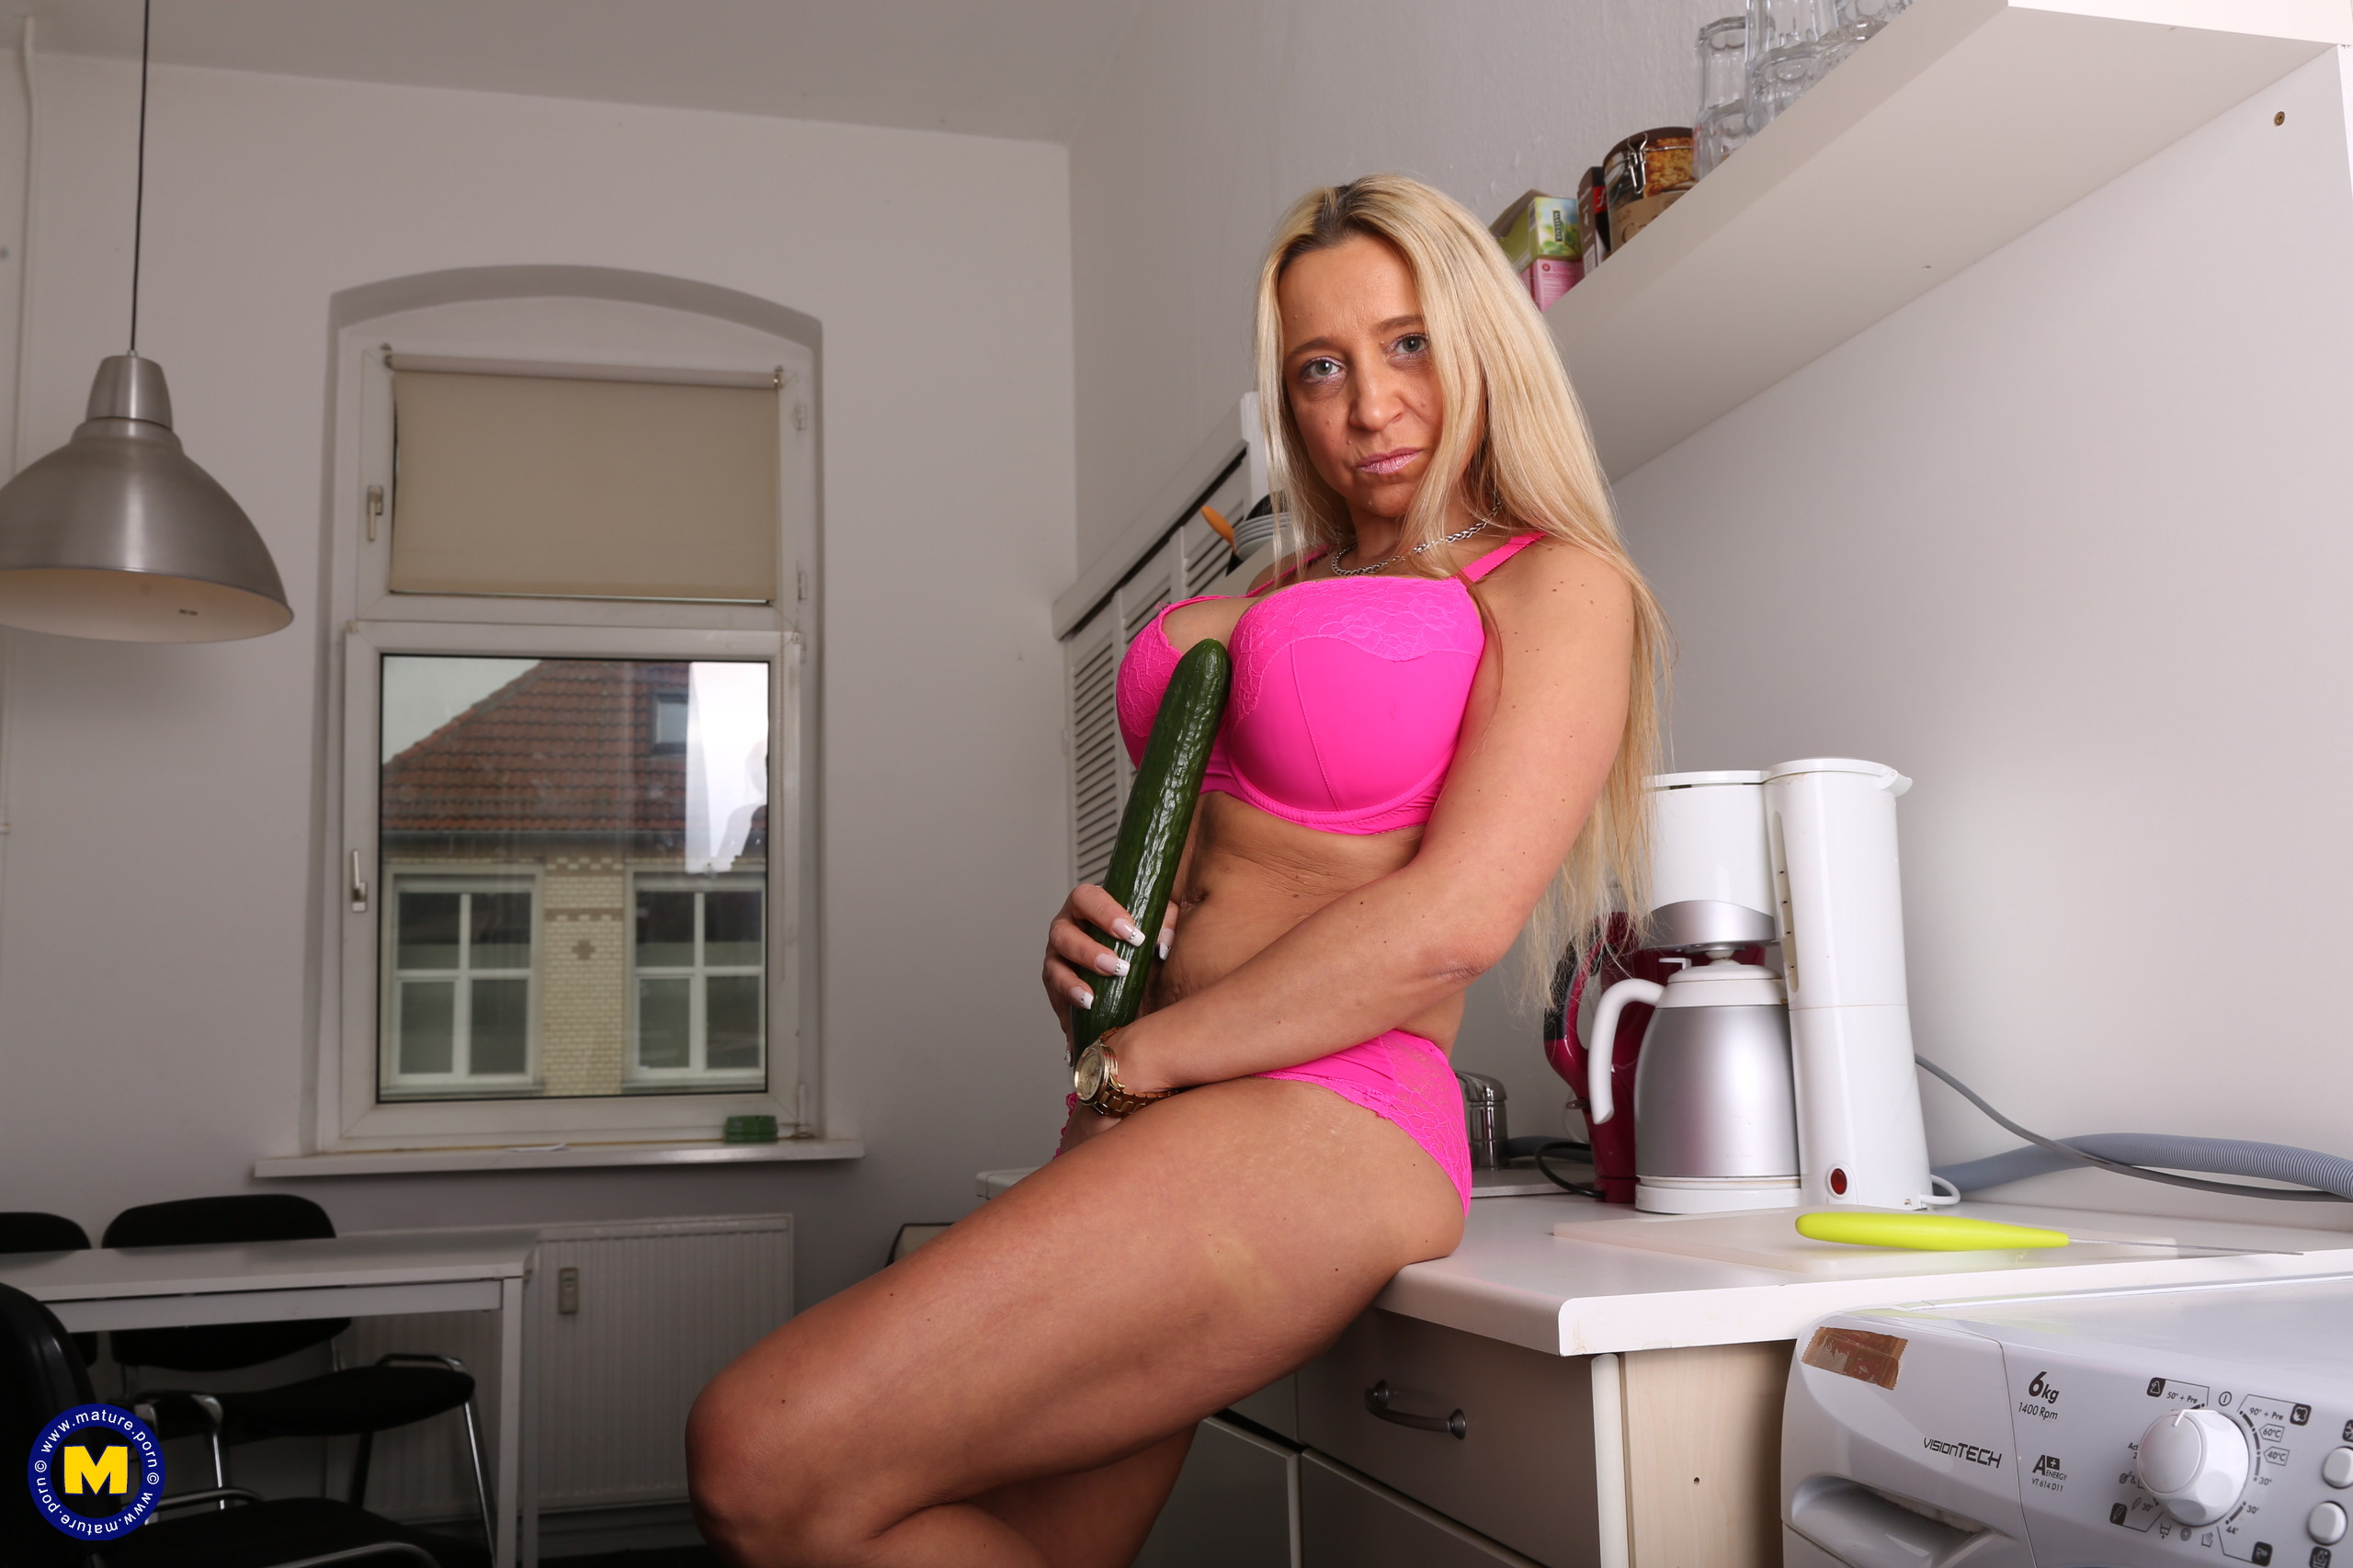 Horny German mummy toying in her kitchen with her cucumber